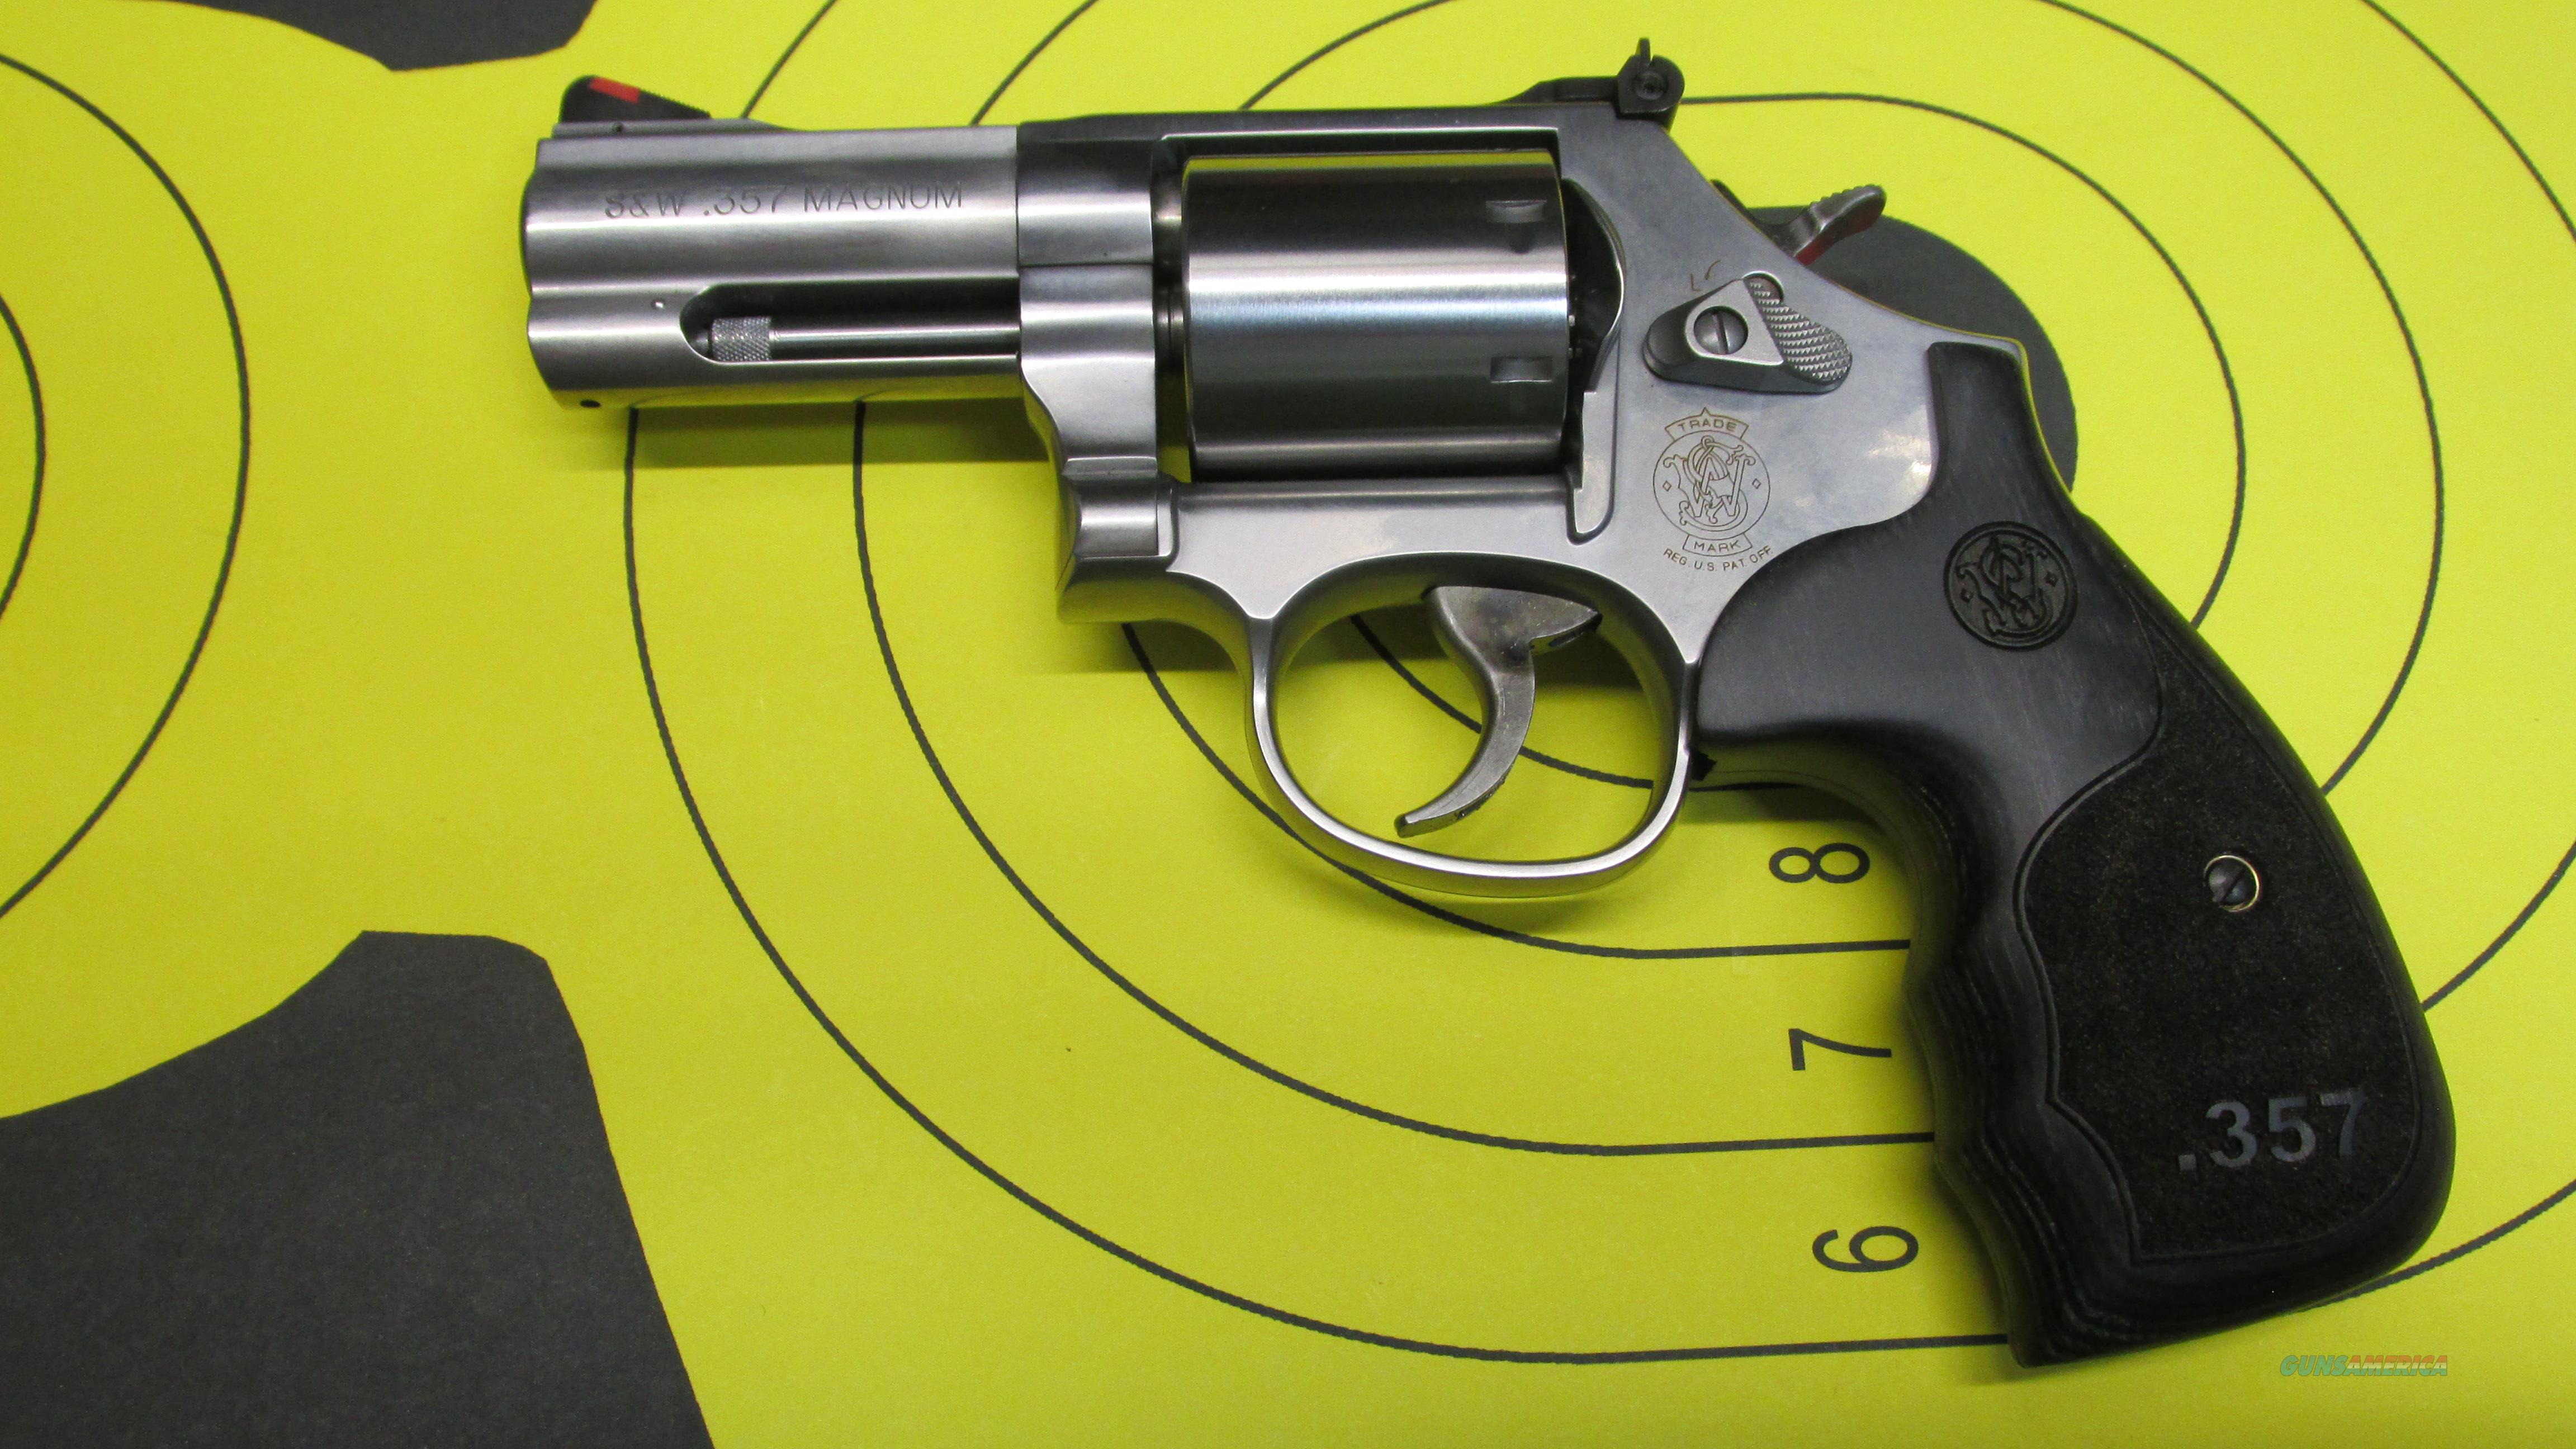 SMITH & WESSON 686-6 PLUS DELUXE 7 SHOT REVOLVER, UNFLUTED CYLINDER WITH 3